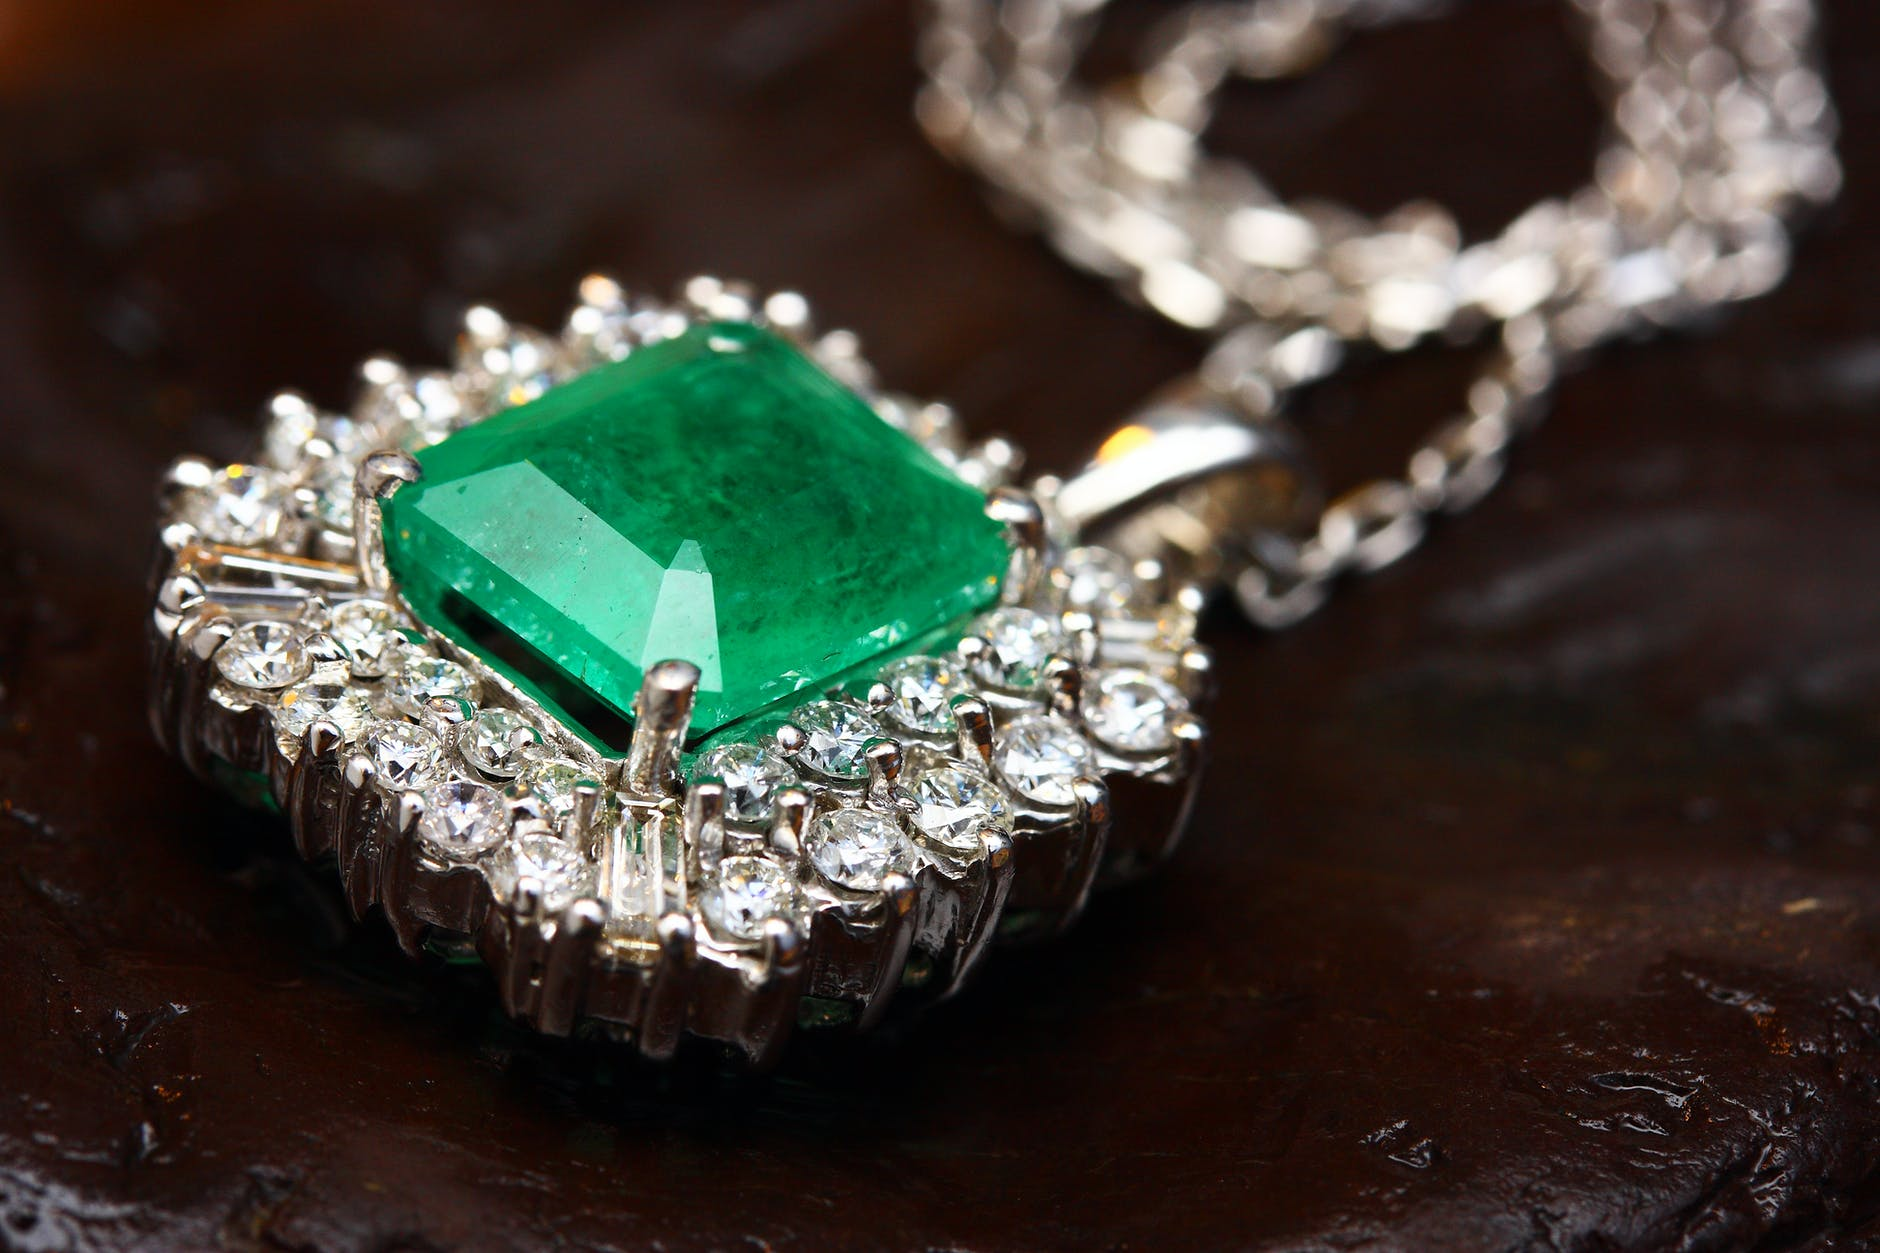 An emerald necklace | Source: Pexels